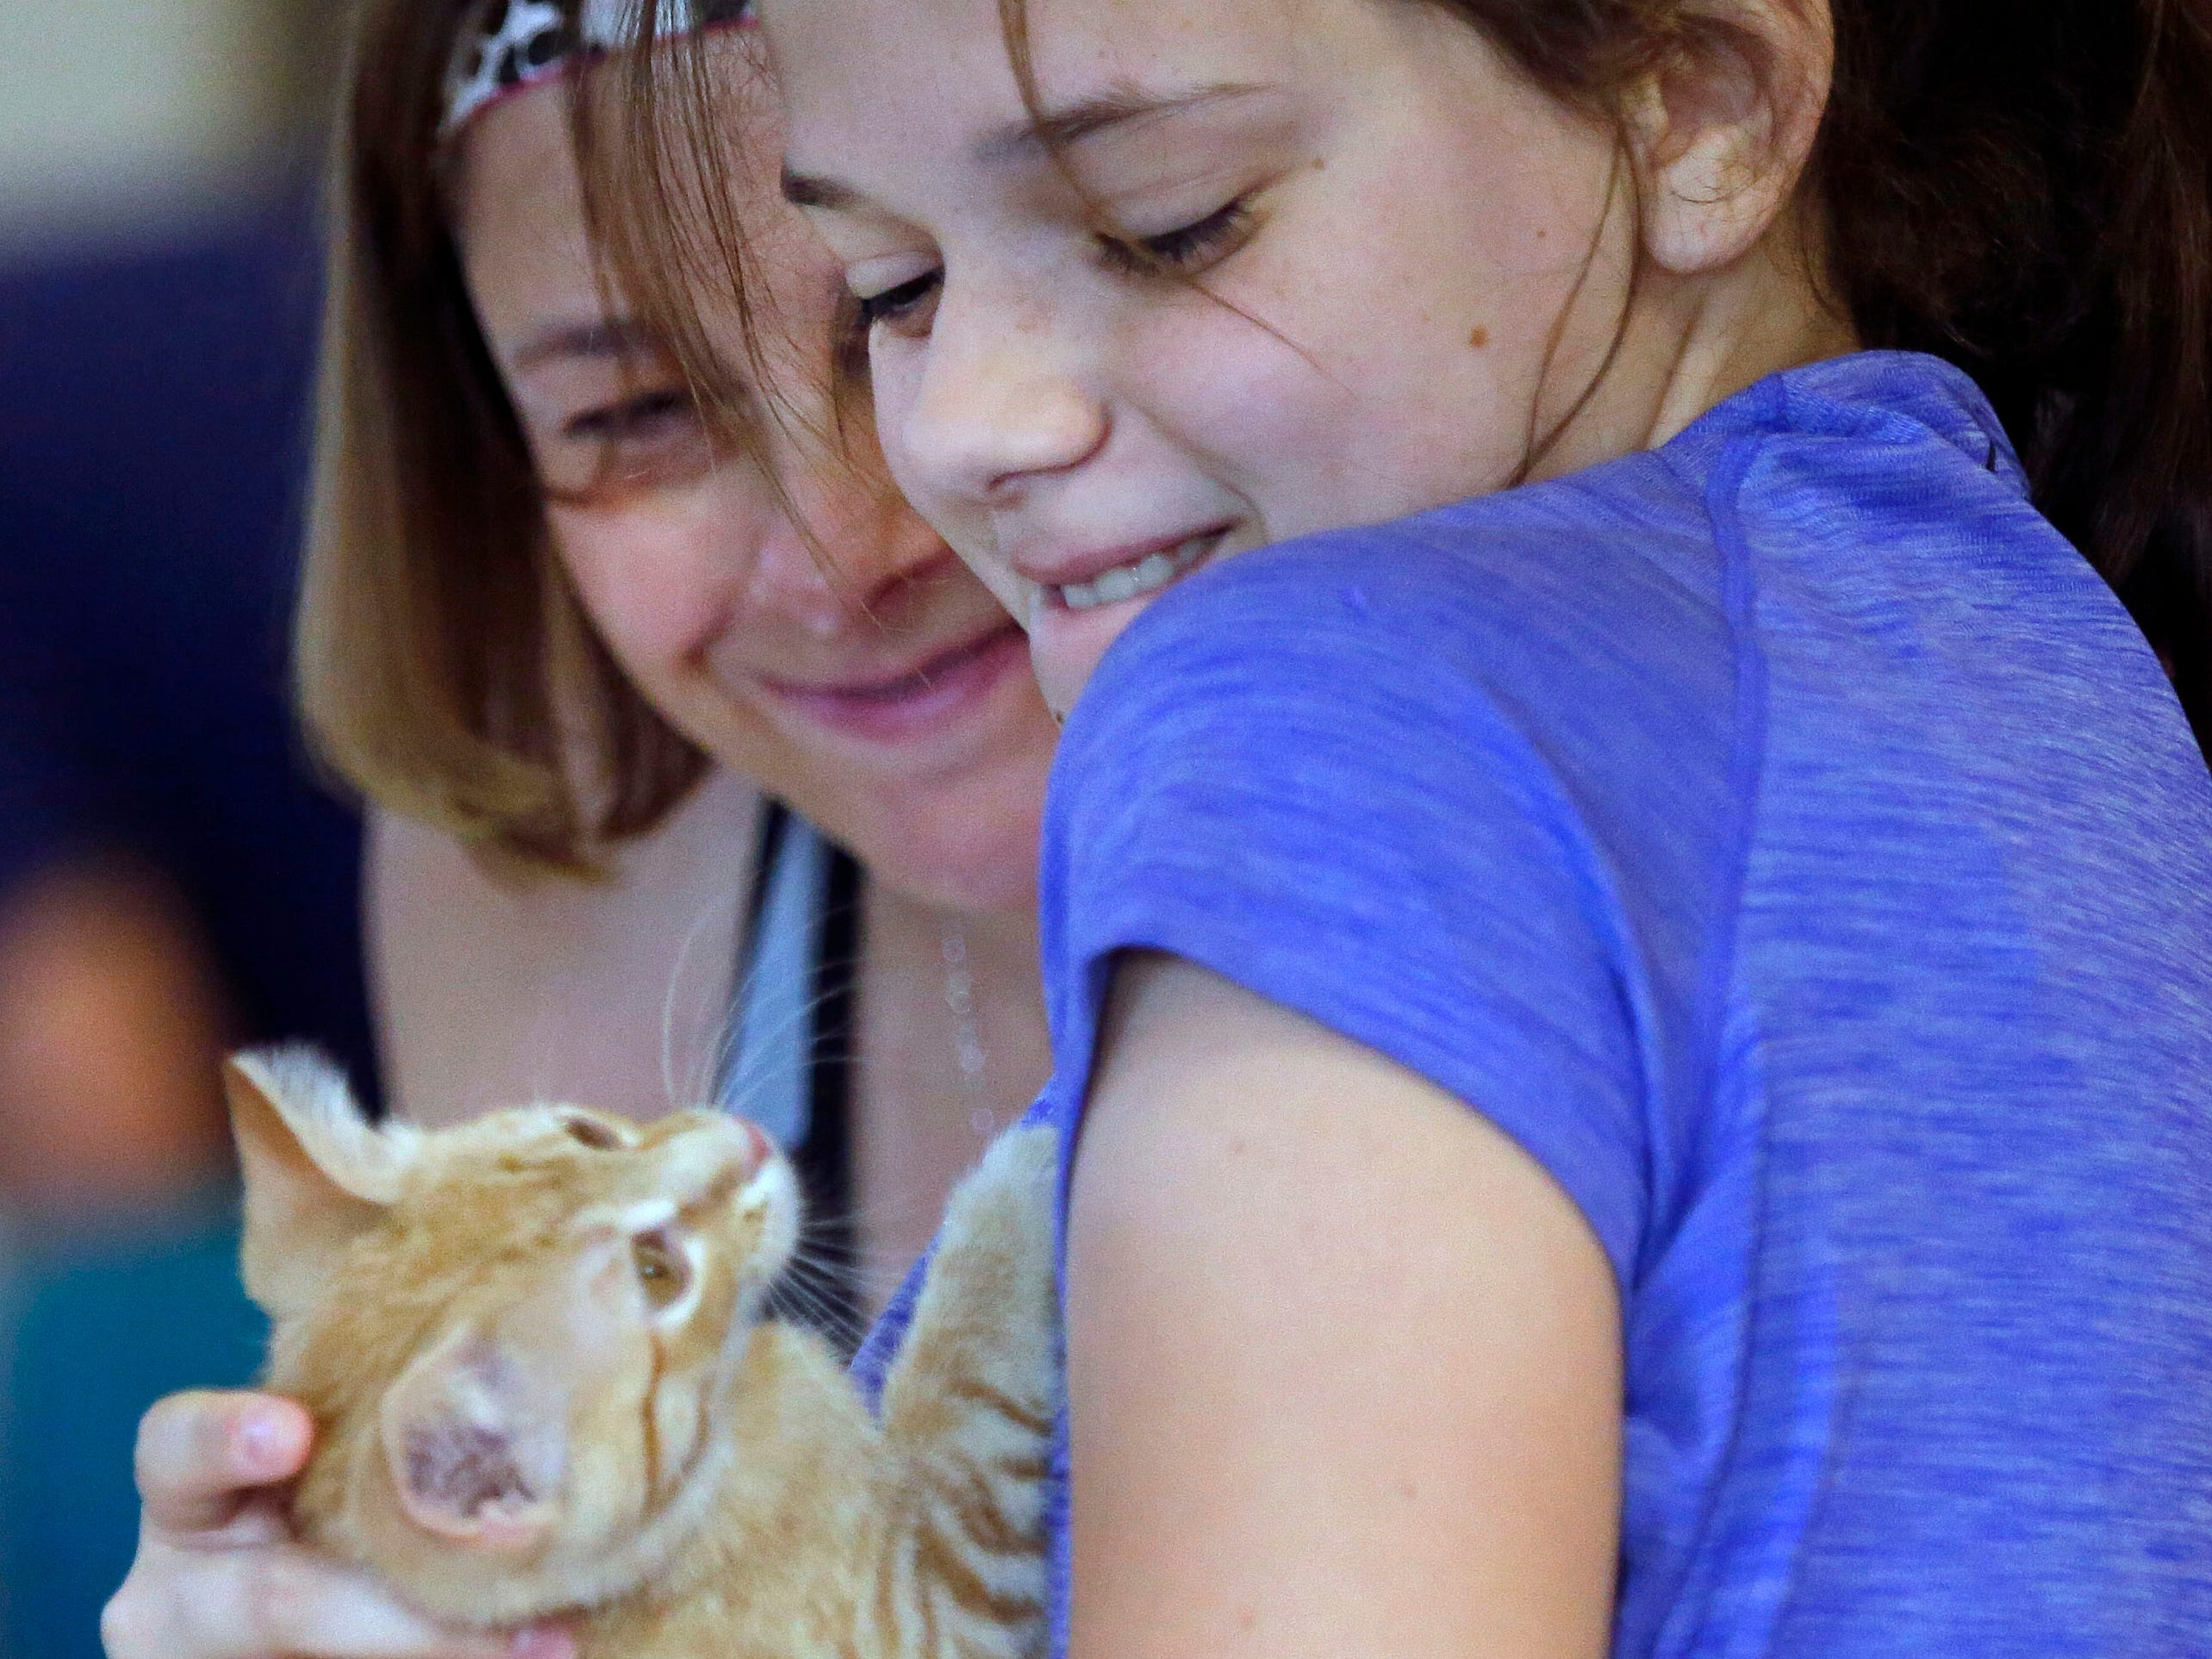 Emmy Vanden Langenberg plays with a kitten while her mother, Cyndi, looks on as the Fox Valley Humane Association and Grace Under Fire Yoga bring together adoptable kittens and yoga class for Kitten Yoga on Saturday, Oct. 13, 2018, at the Fox Valley Humane Association in Appleton, Wis.